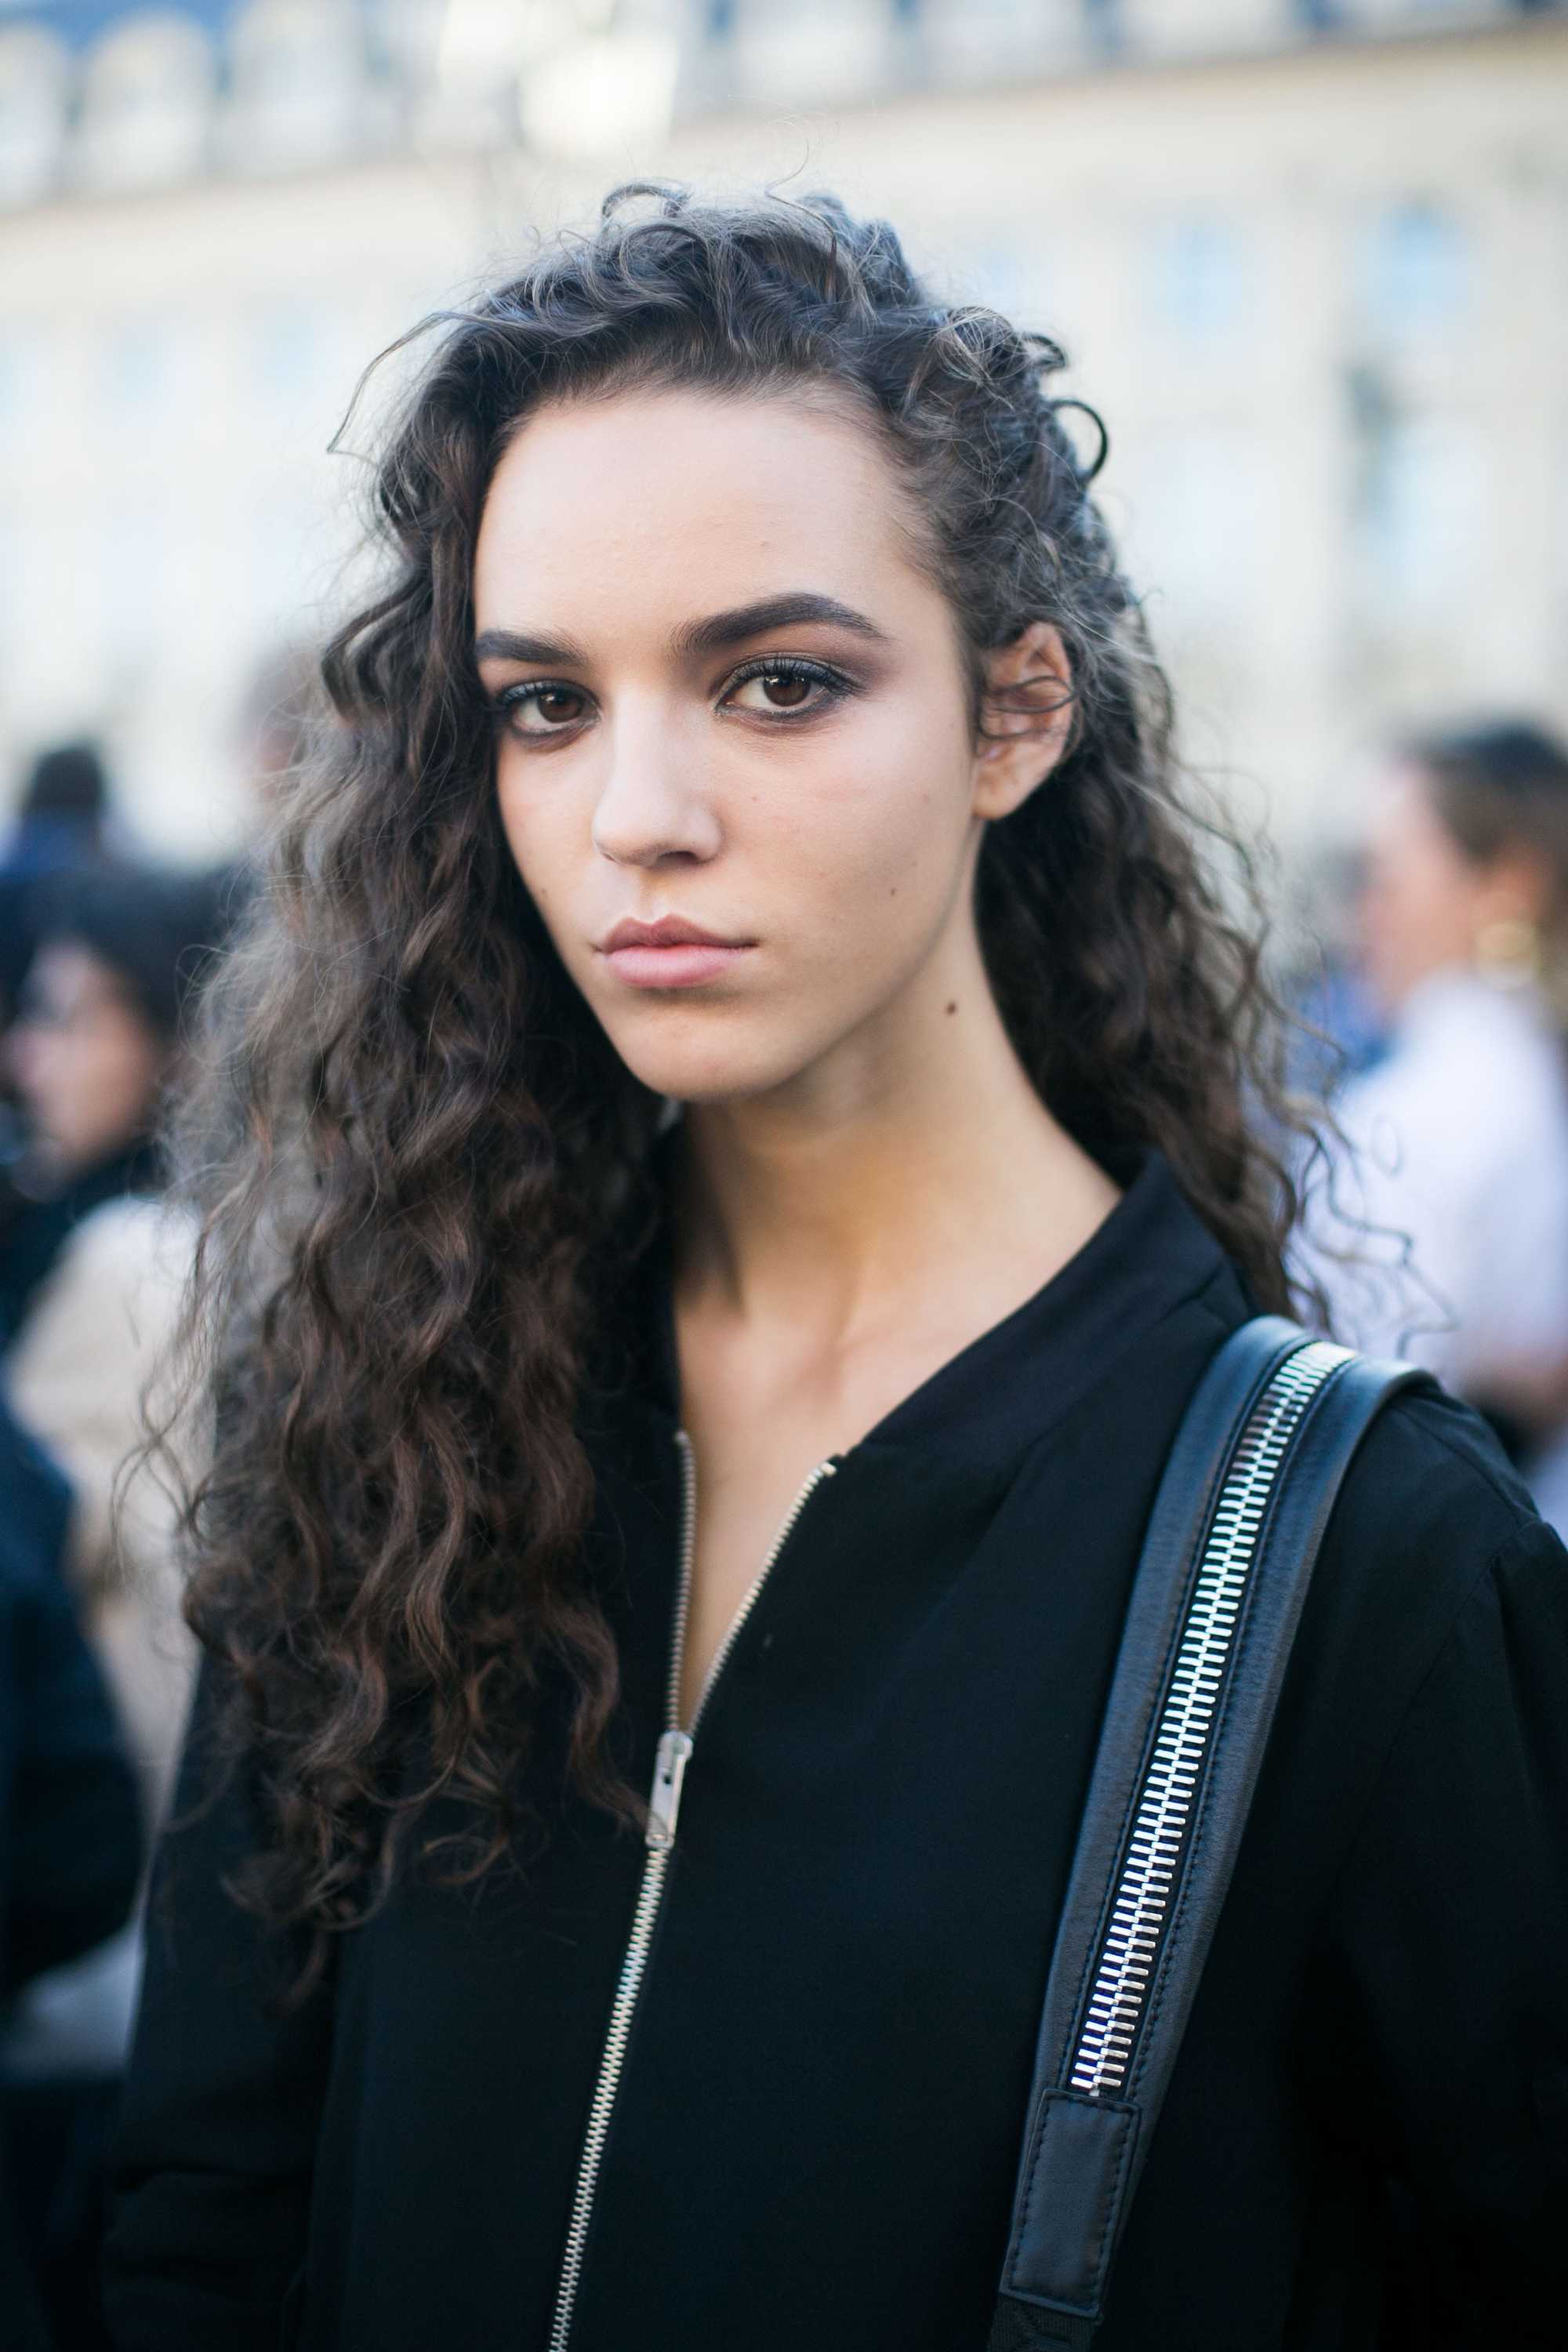 model with long curly hair wearing black